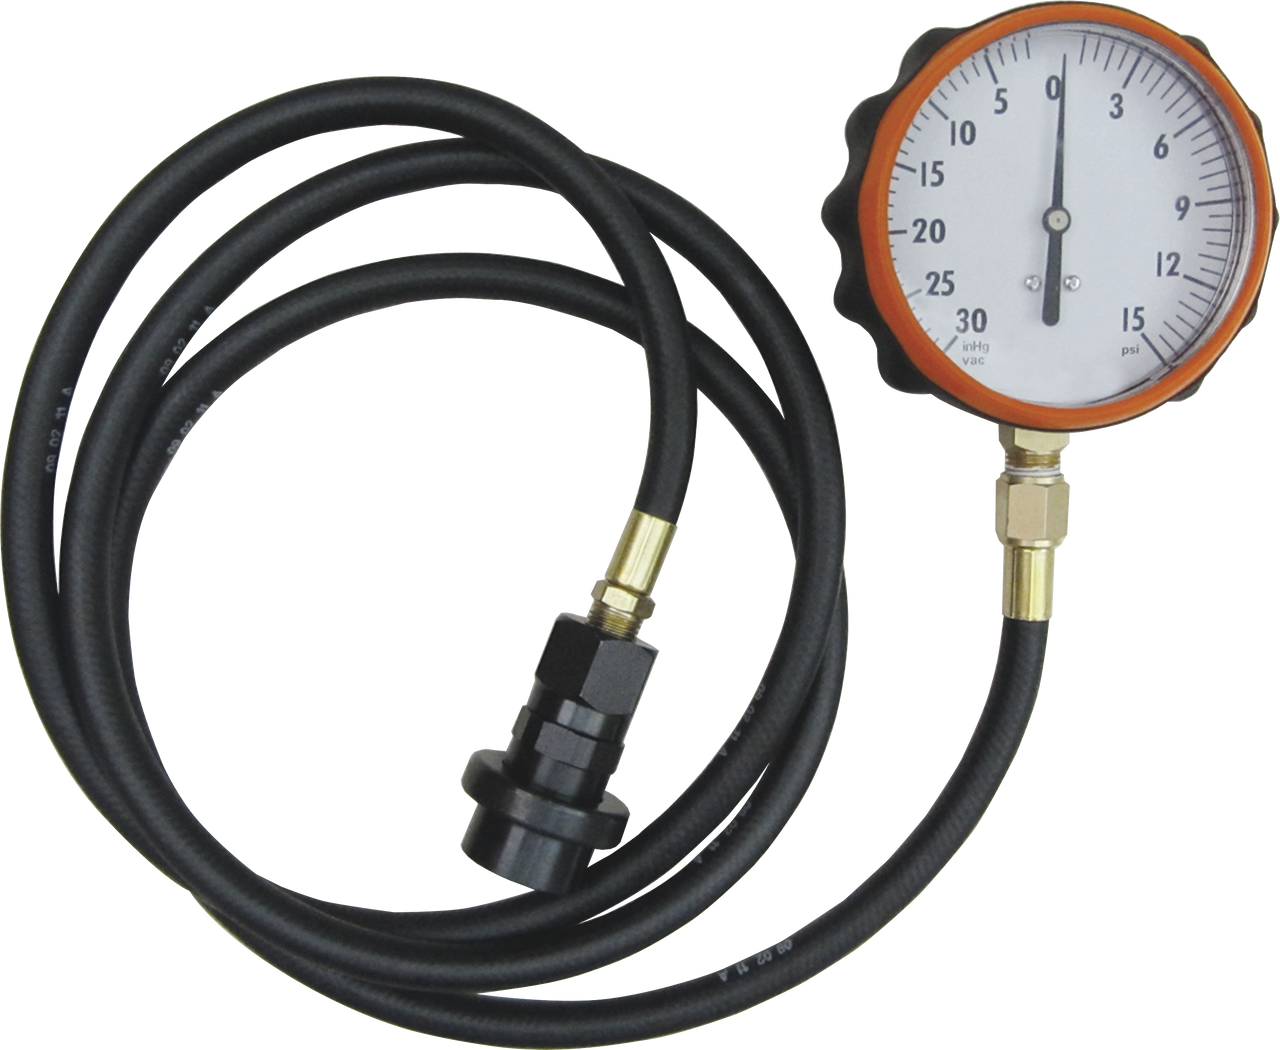 Manicar TU-32-6 Fuel System Test Kit Compatible with 6.6 L GM Duramax Diesel with Hose and Quick Coupler